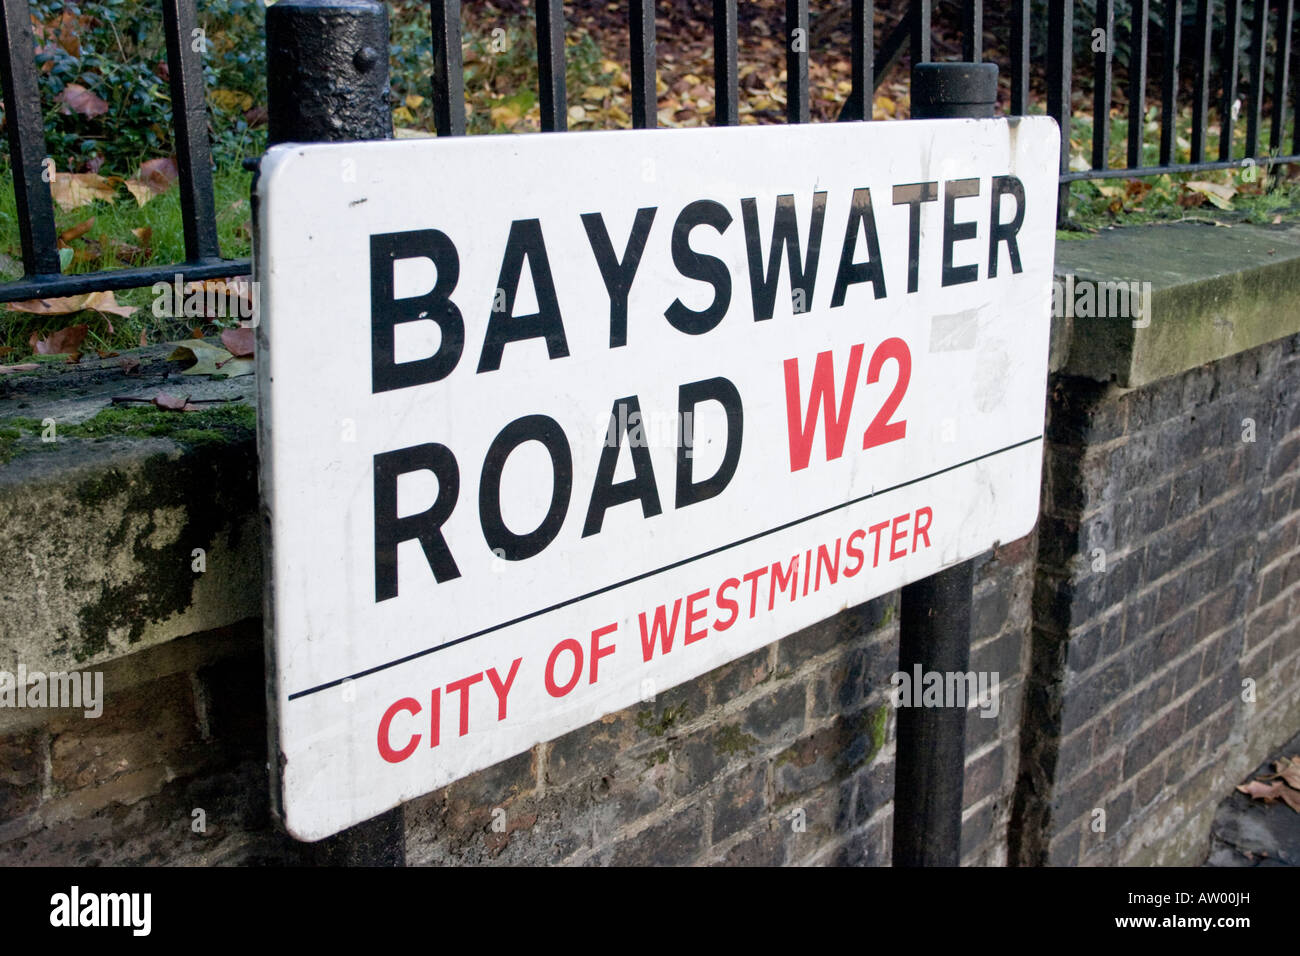 Bayswater road london stock photos bayswater road london stock bayswater road london w2 street name sign stock image reheart Gallery